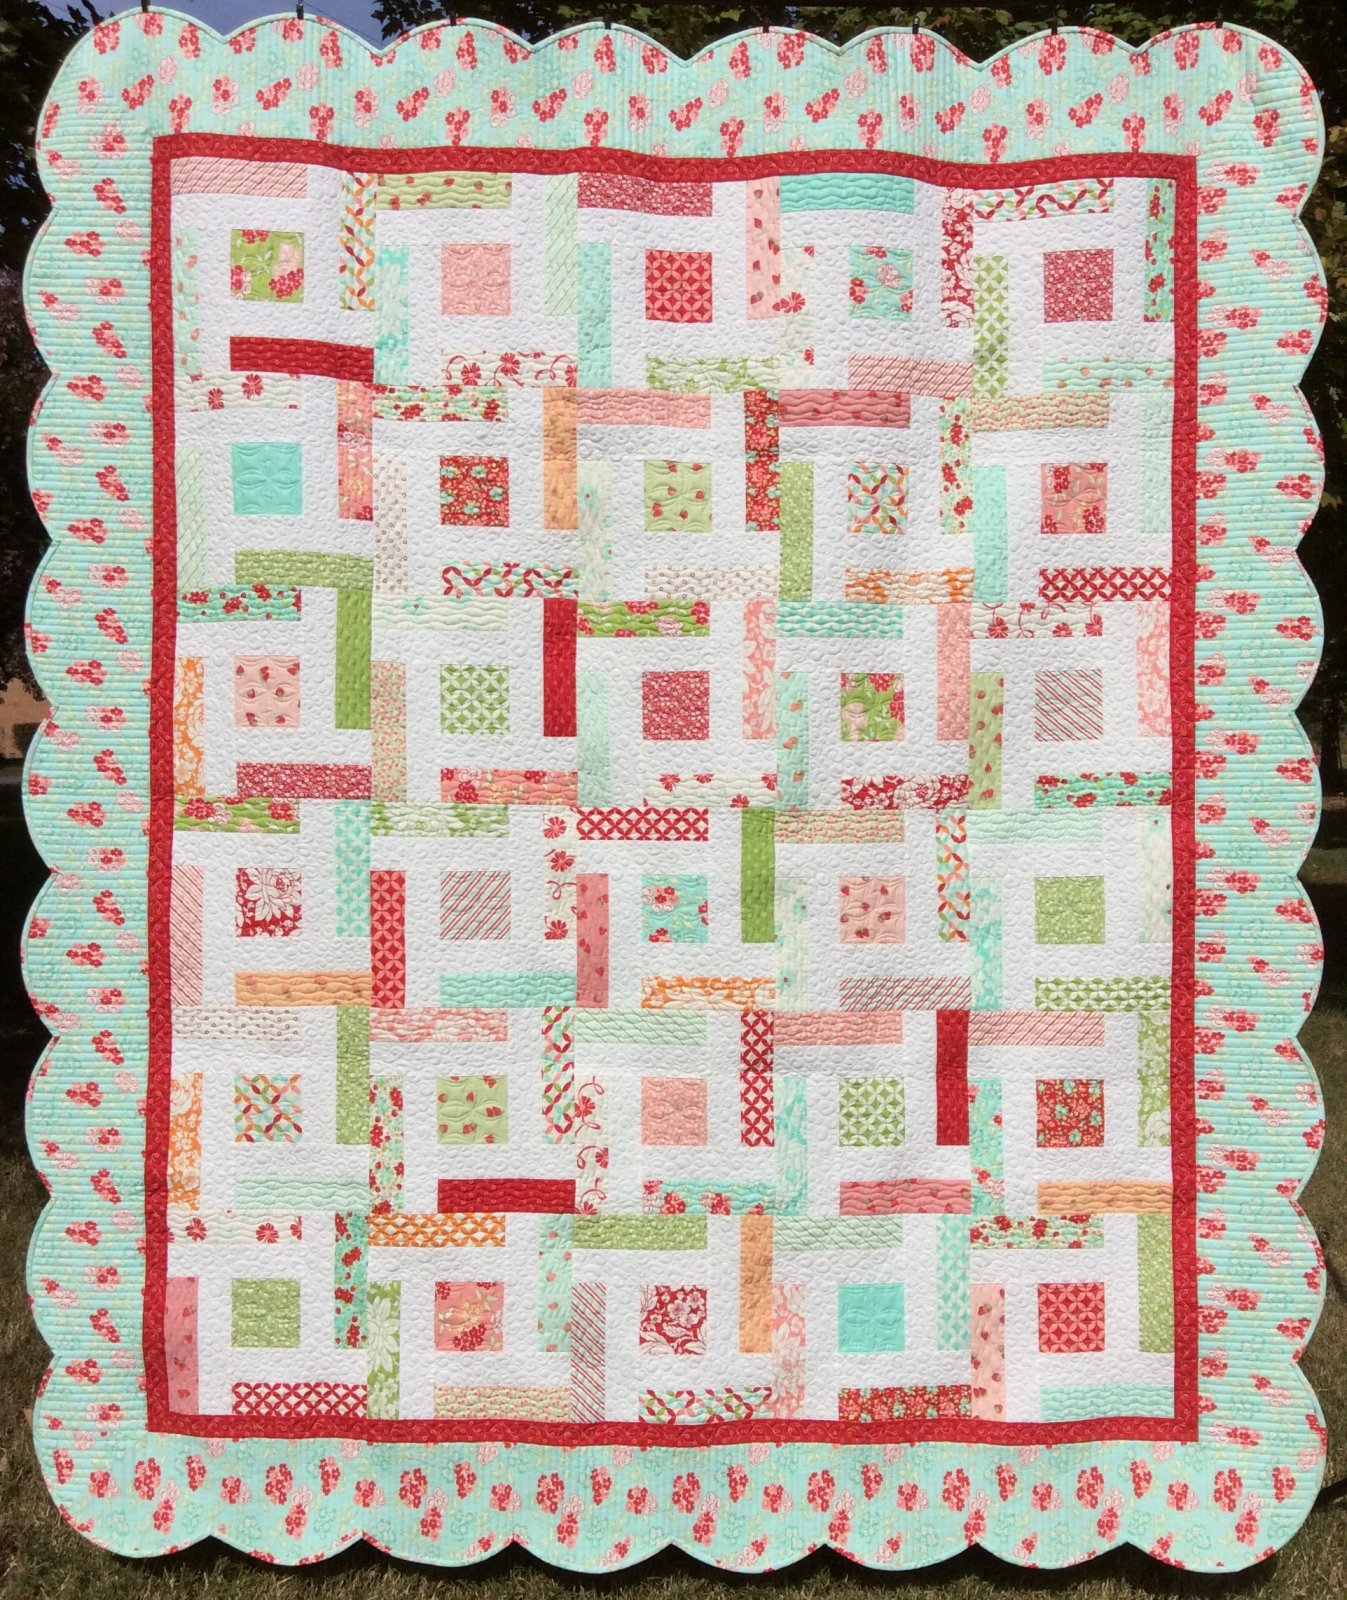 Hello Darling Quilt Kit With Scalloped Edge Border